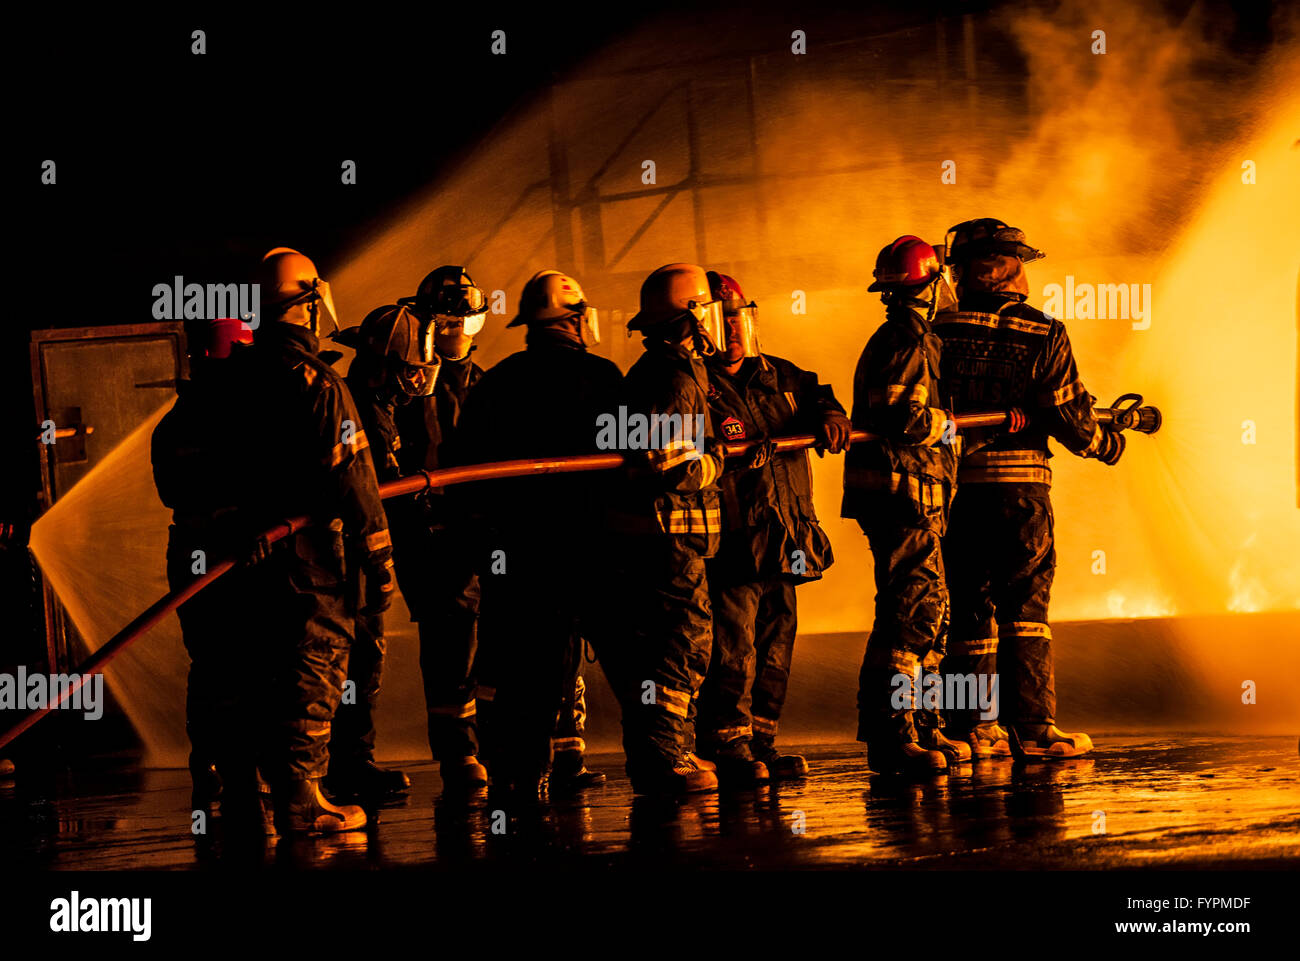 Group of firefighters fighting a burning fire - Stock Image